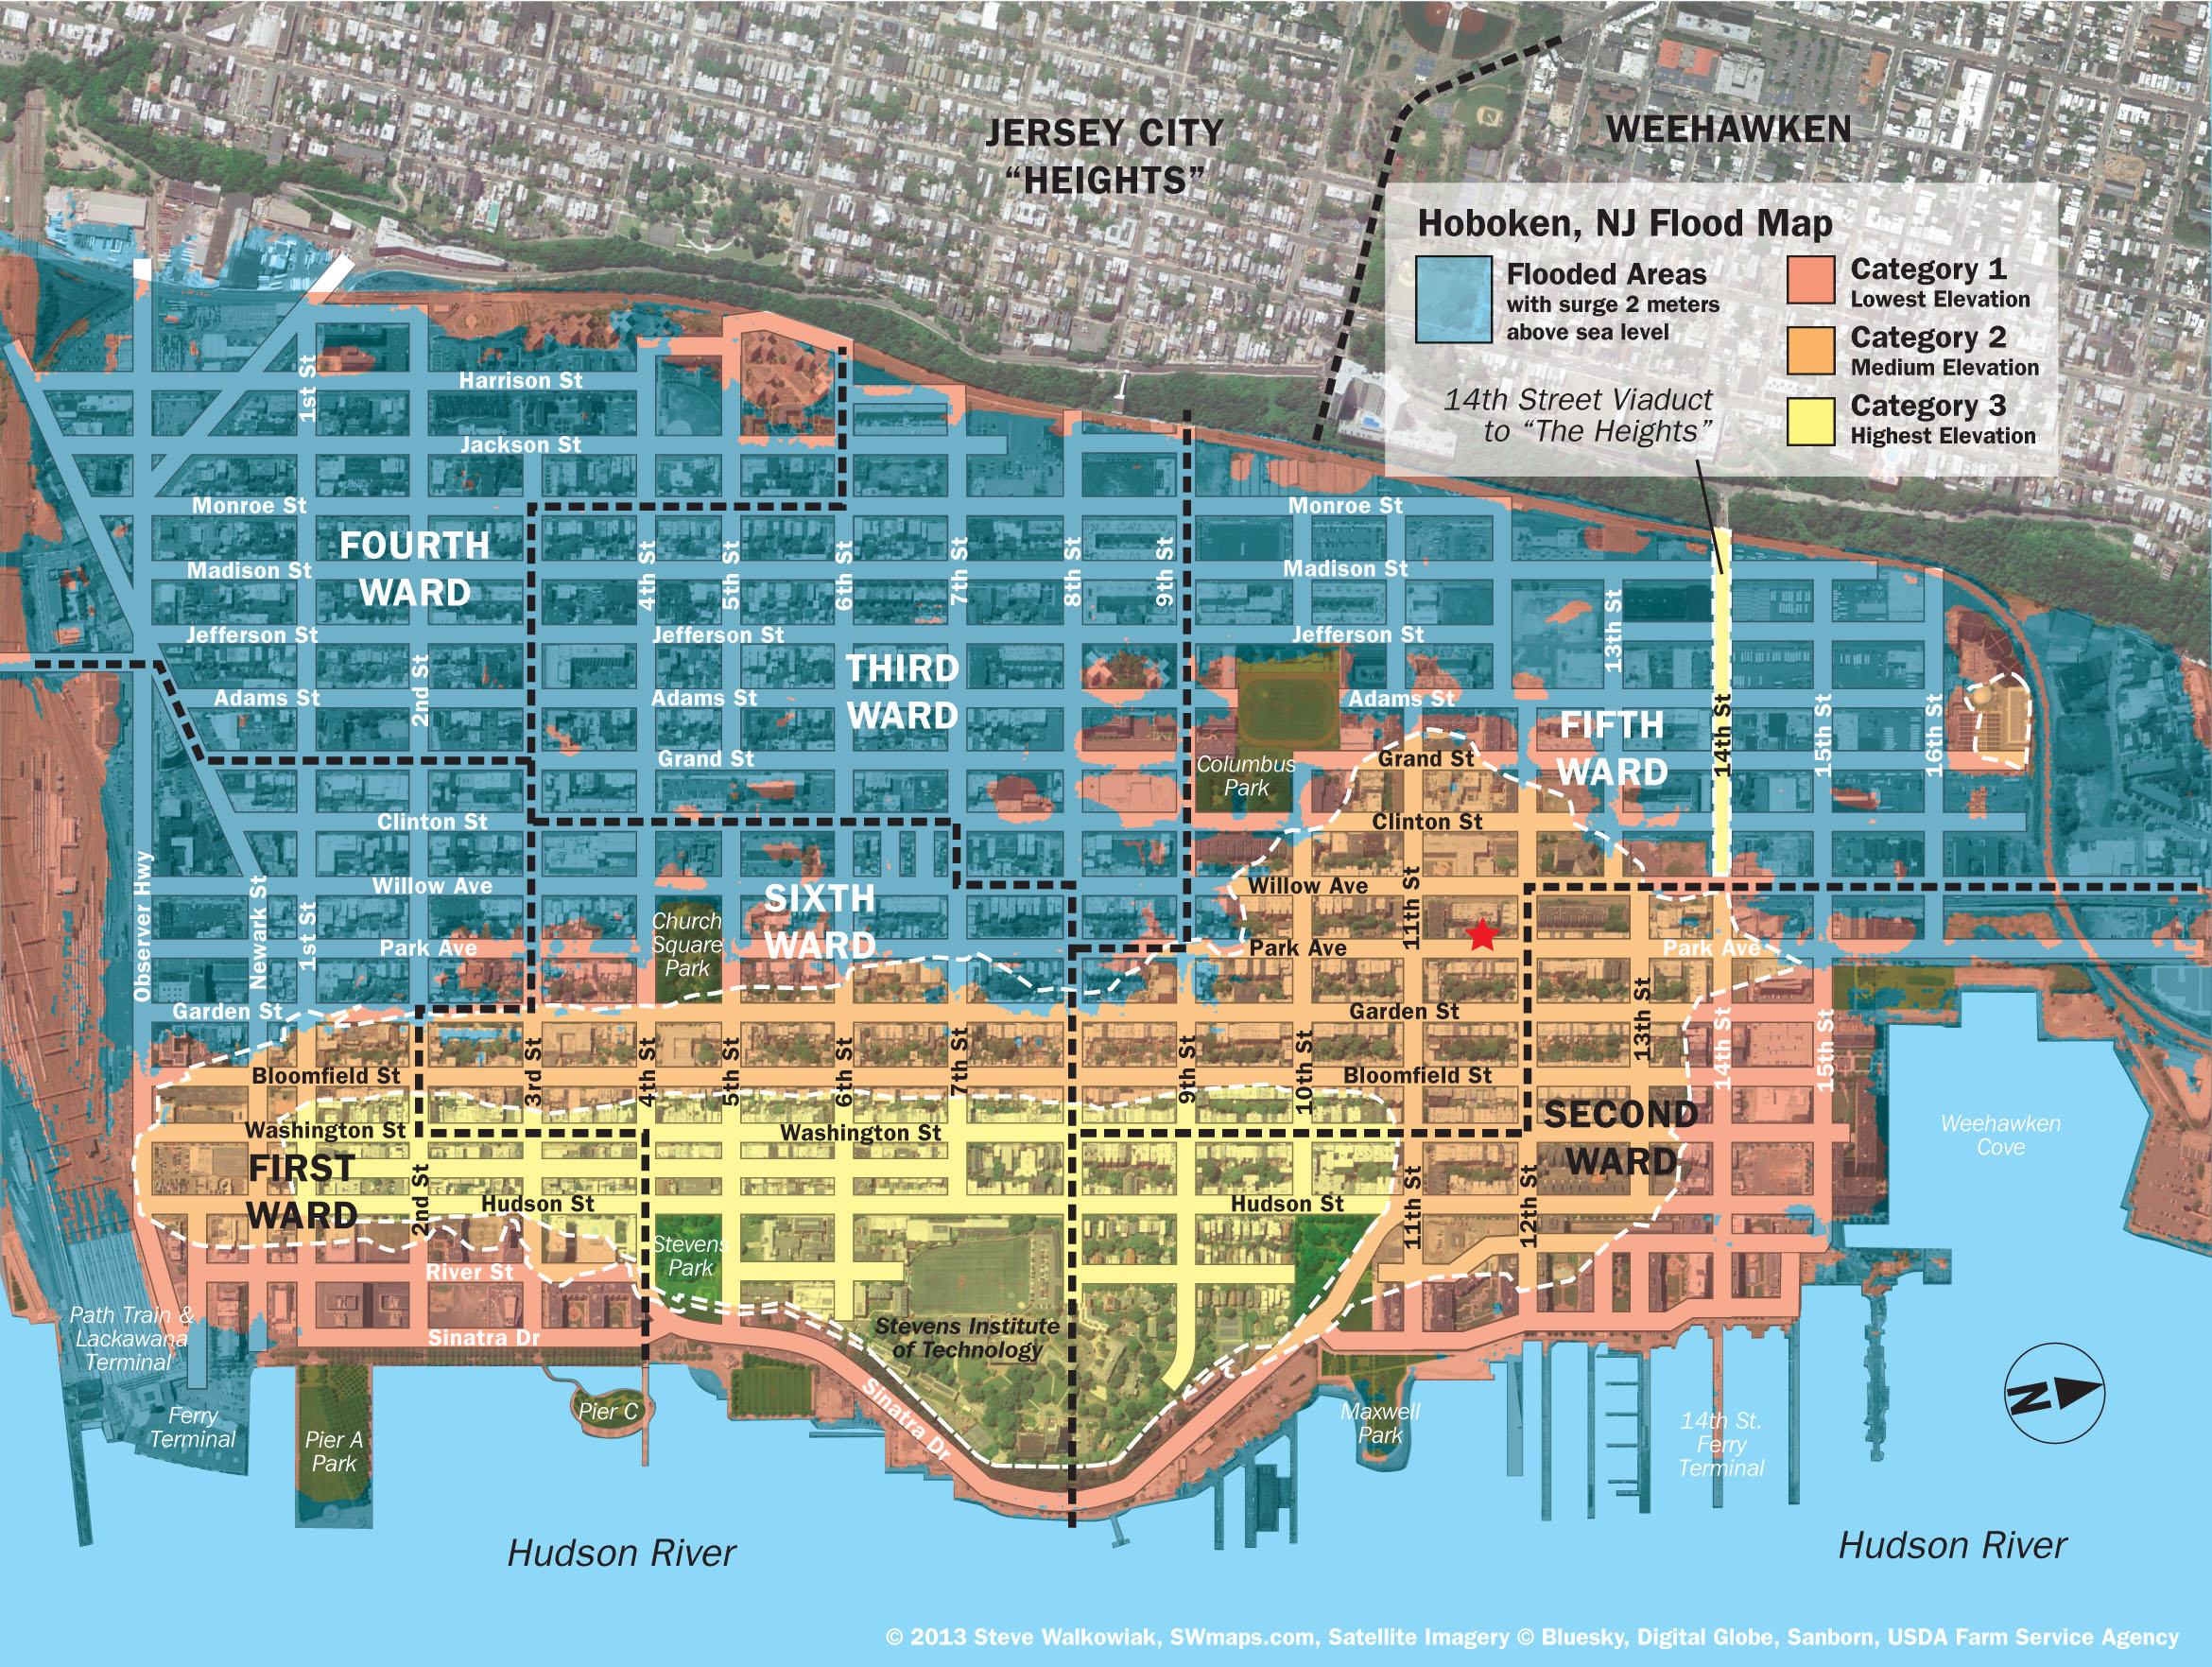 New Hoboken Flood Map With Water Levels Post Hurricane Sandy - Florida flood plain map